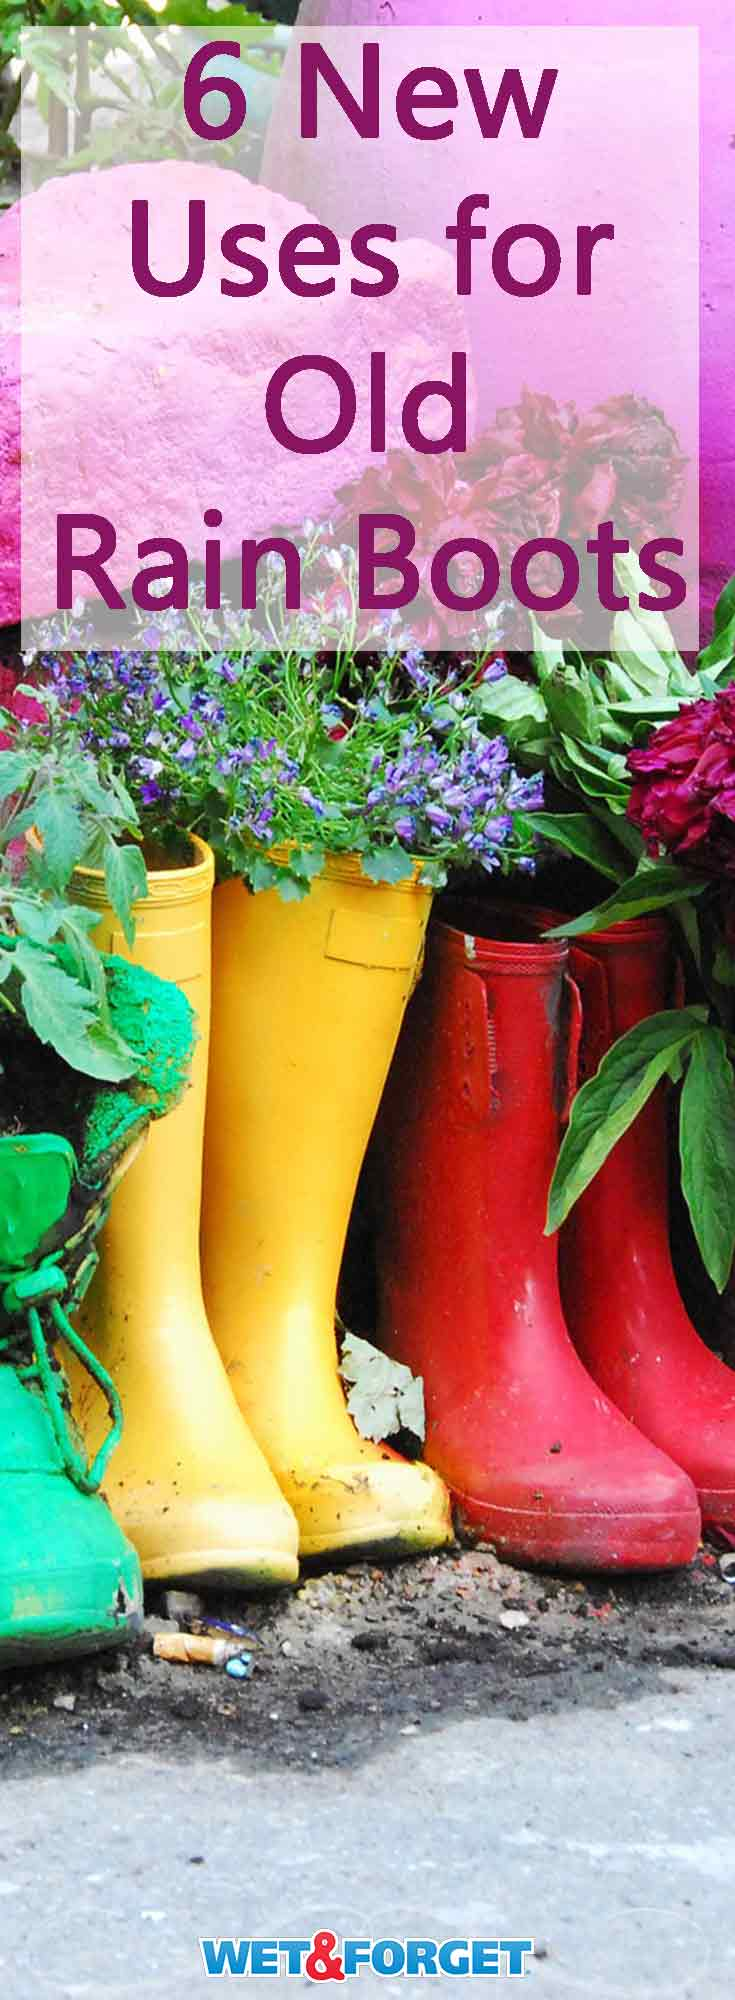 Have an old pair of rain boots laying around? Reuse them with these DIY rain boot ideas!